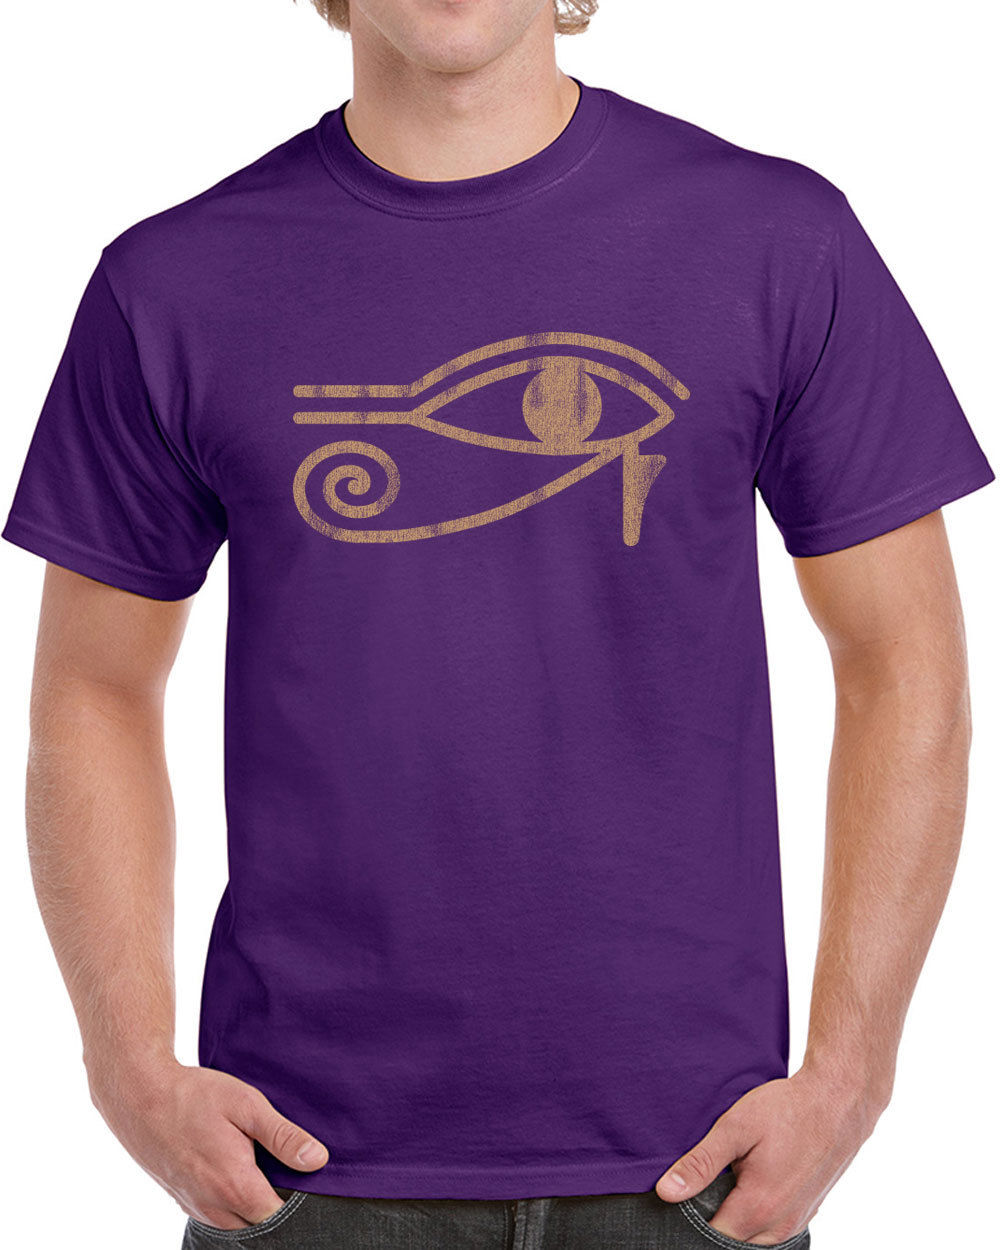 T Shirt Design Template Casual Crew Neck Loose Eye Of Ra Egypt ...